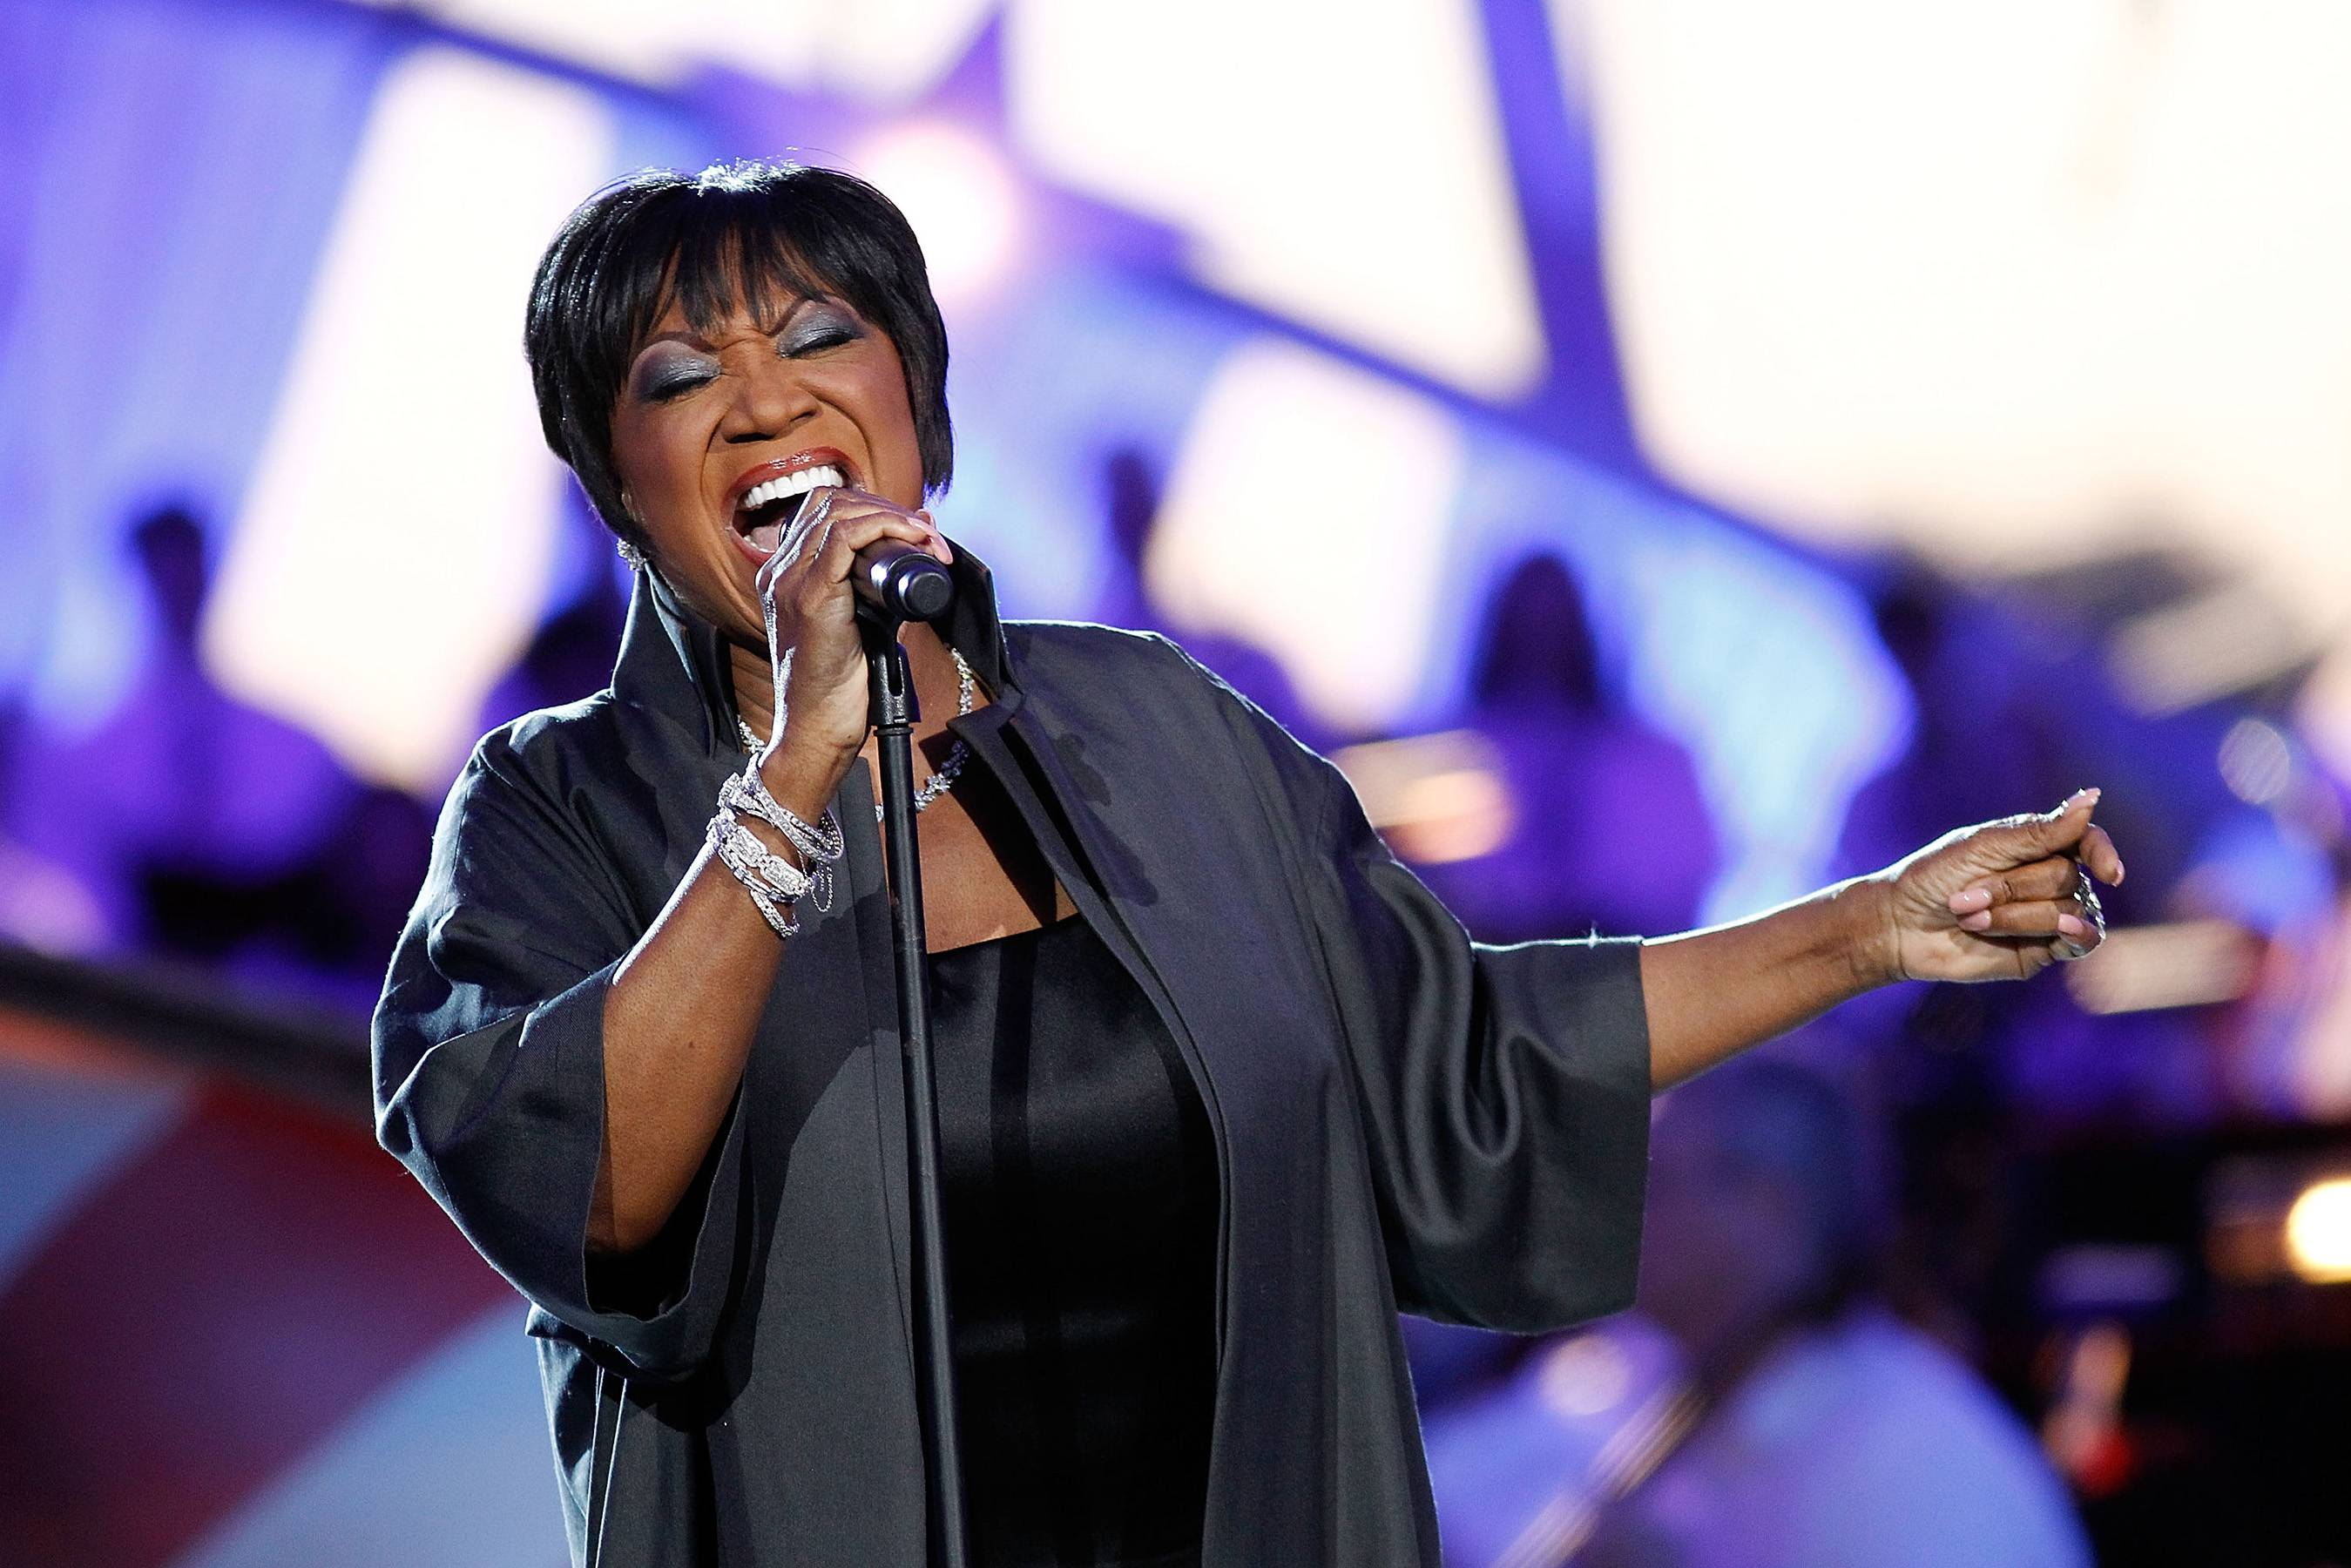 Patti LaBelle - Legendary Godmother of Soul Patti LaBelle is going to kick off her shoes and cook up a soulful performance just for you. Keep it locked for a show you definitely don't want to miss! (Photo: Paul Morigi/Getty Images for Capital Concerts)